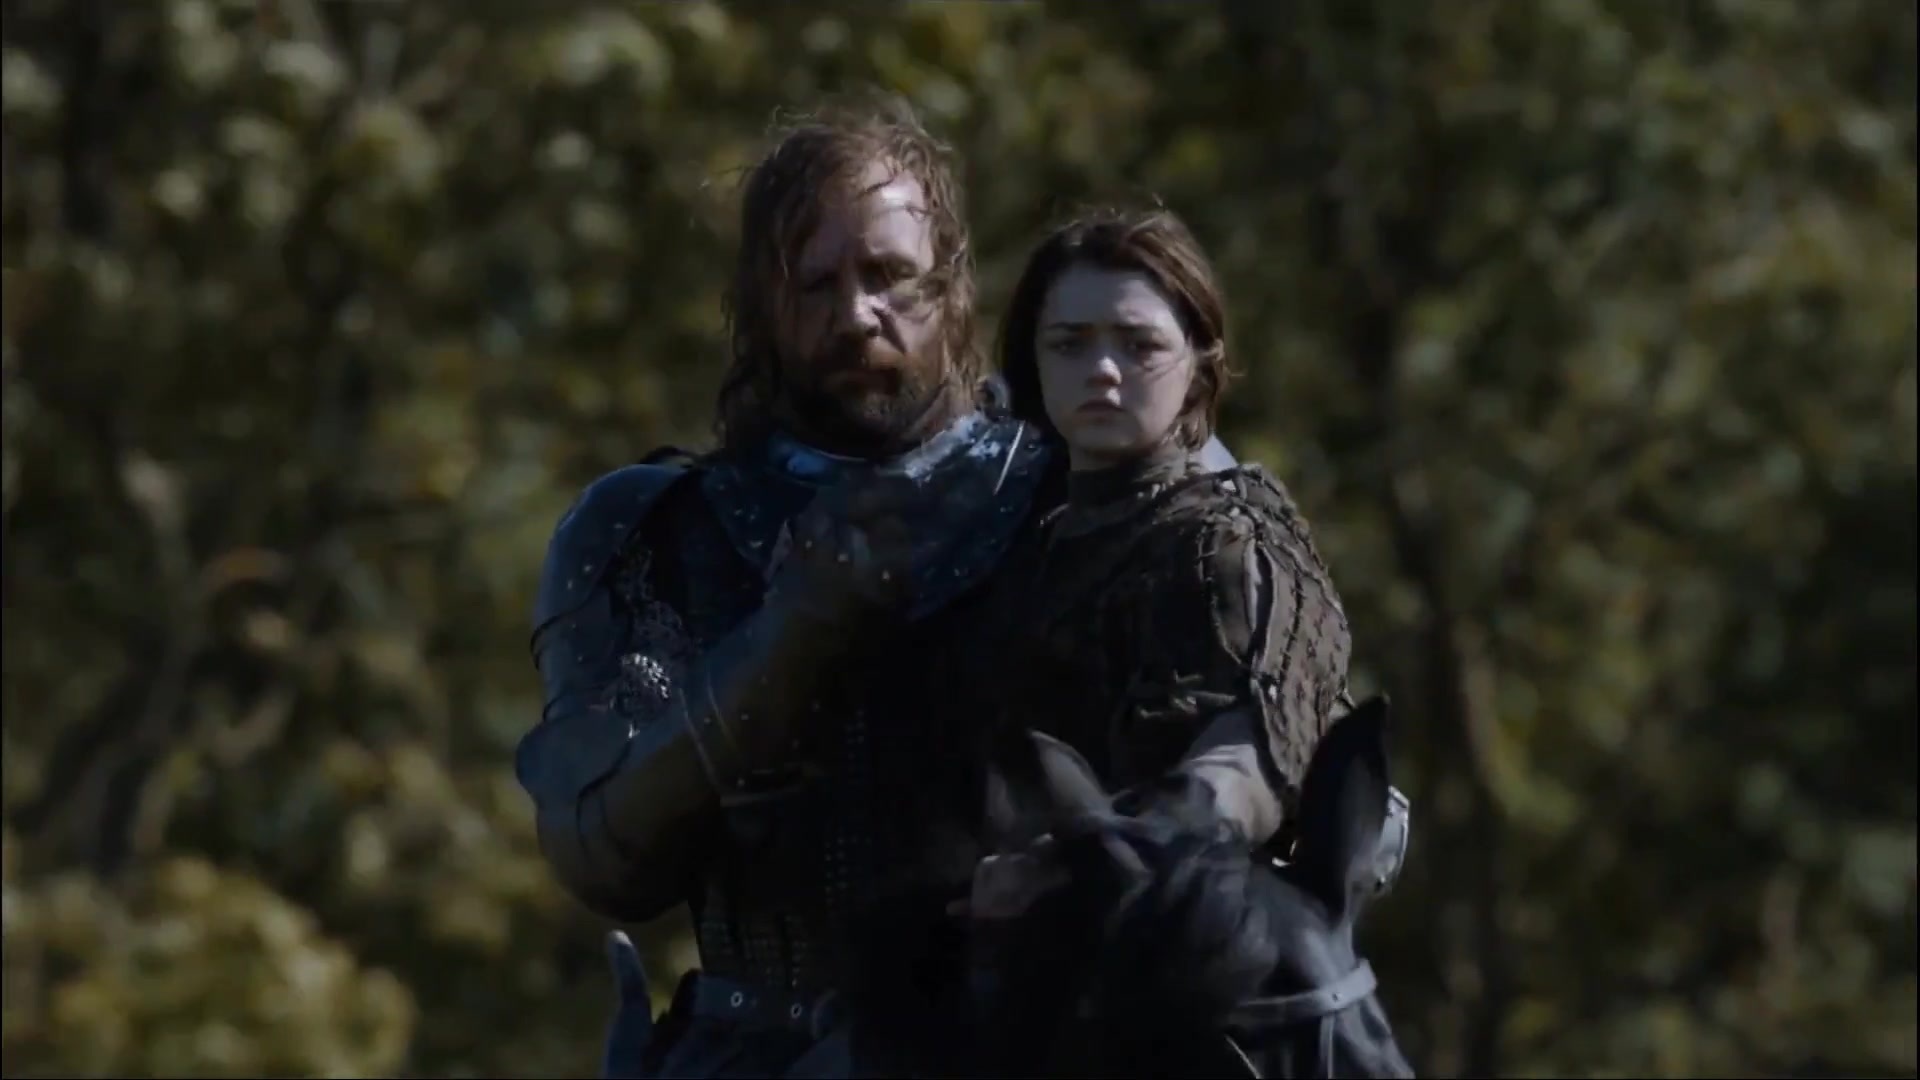 猎狗与艾莉亚 The Hound with Arya